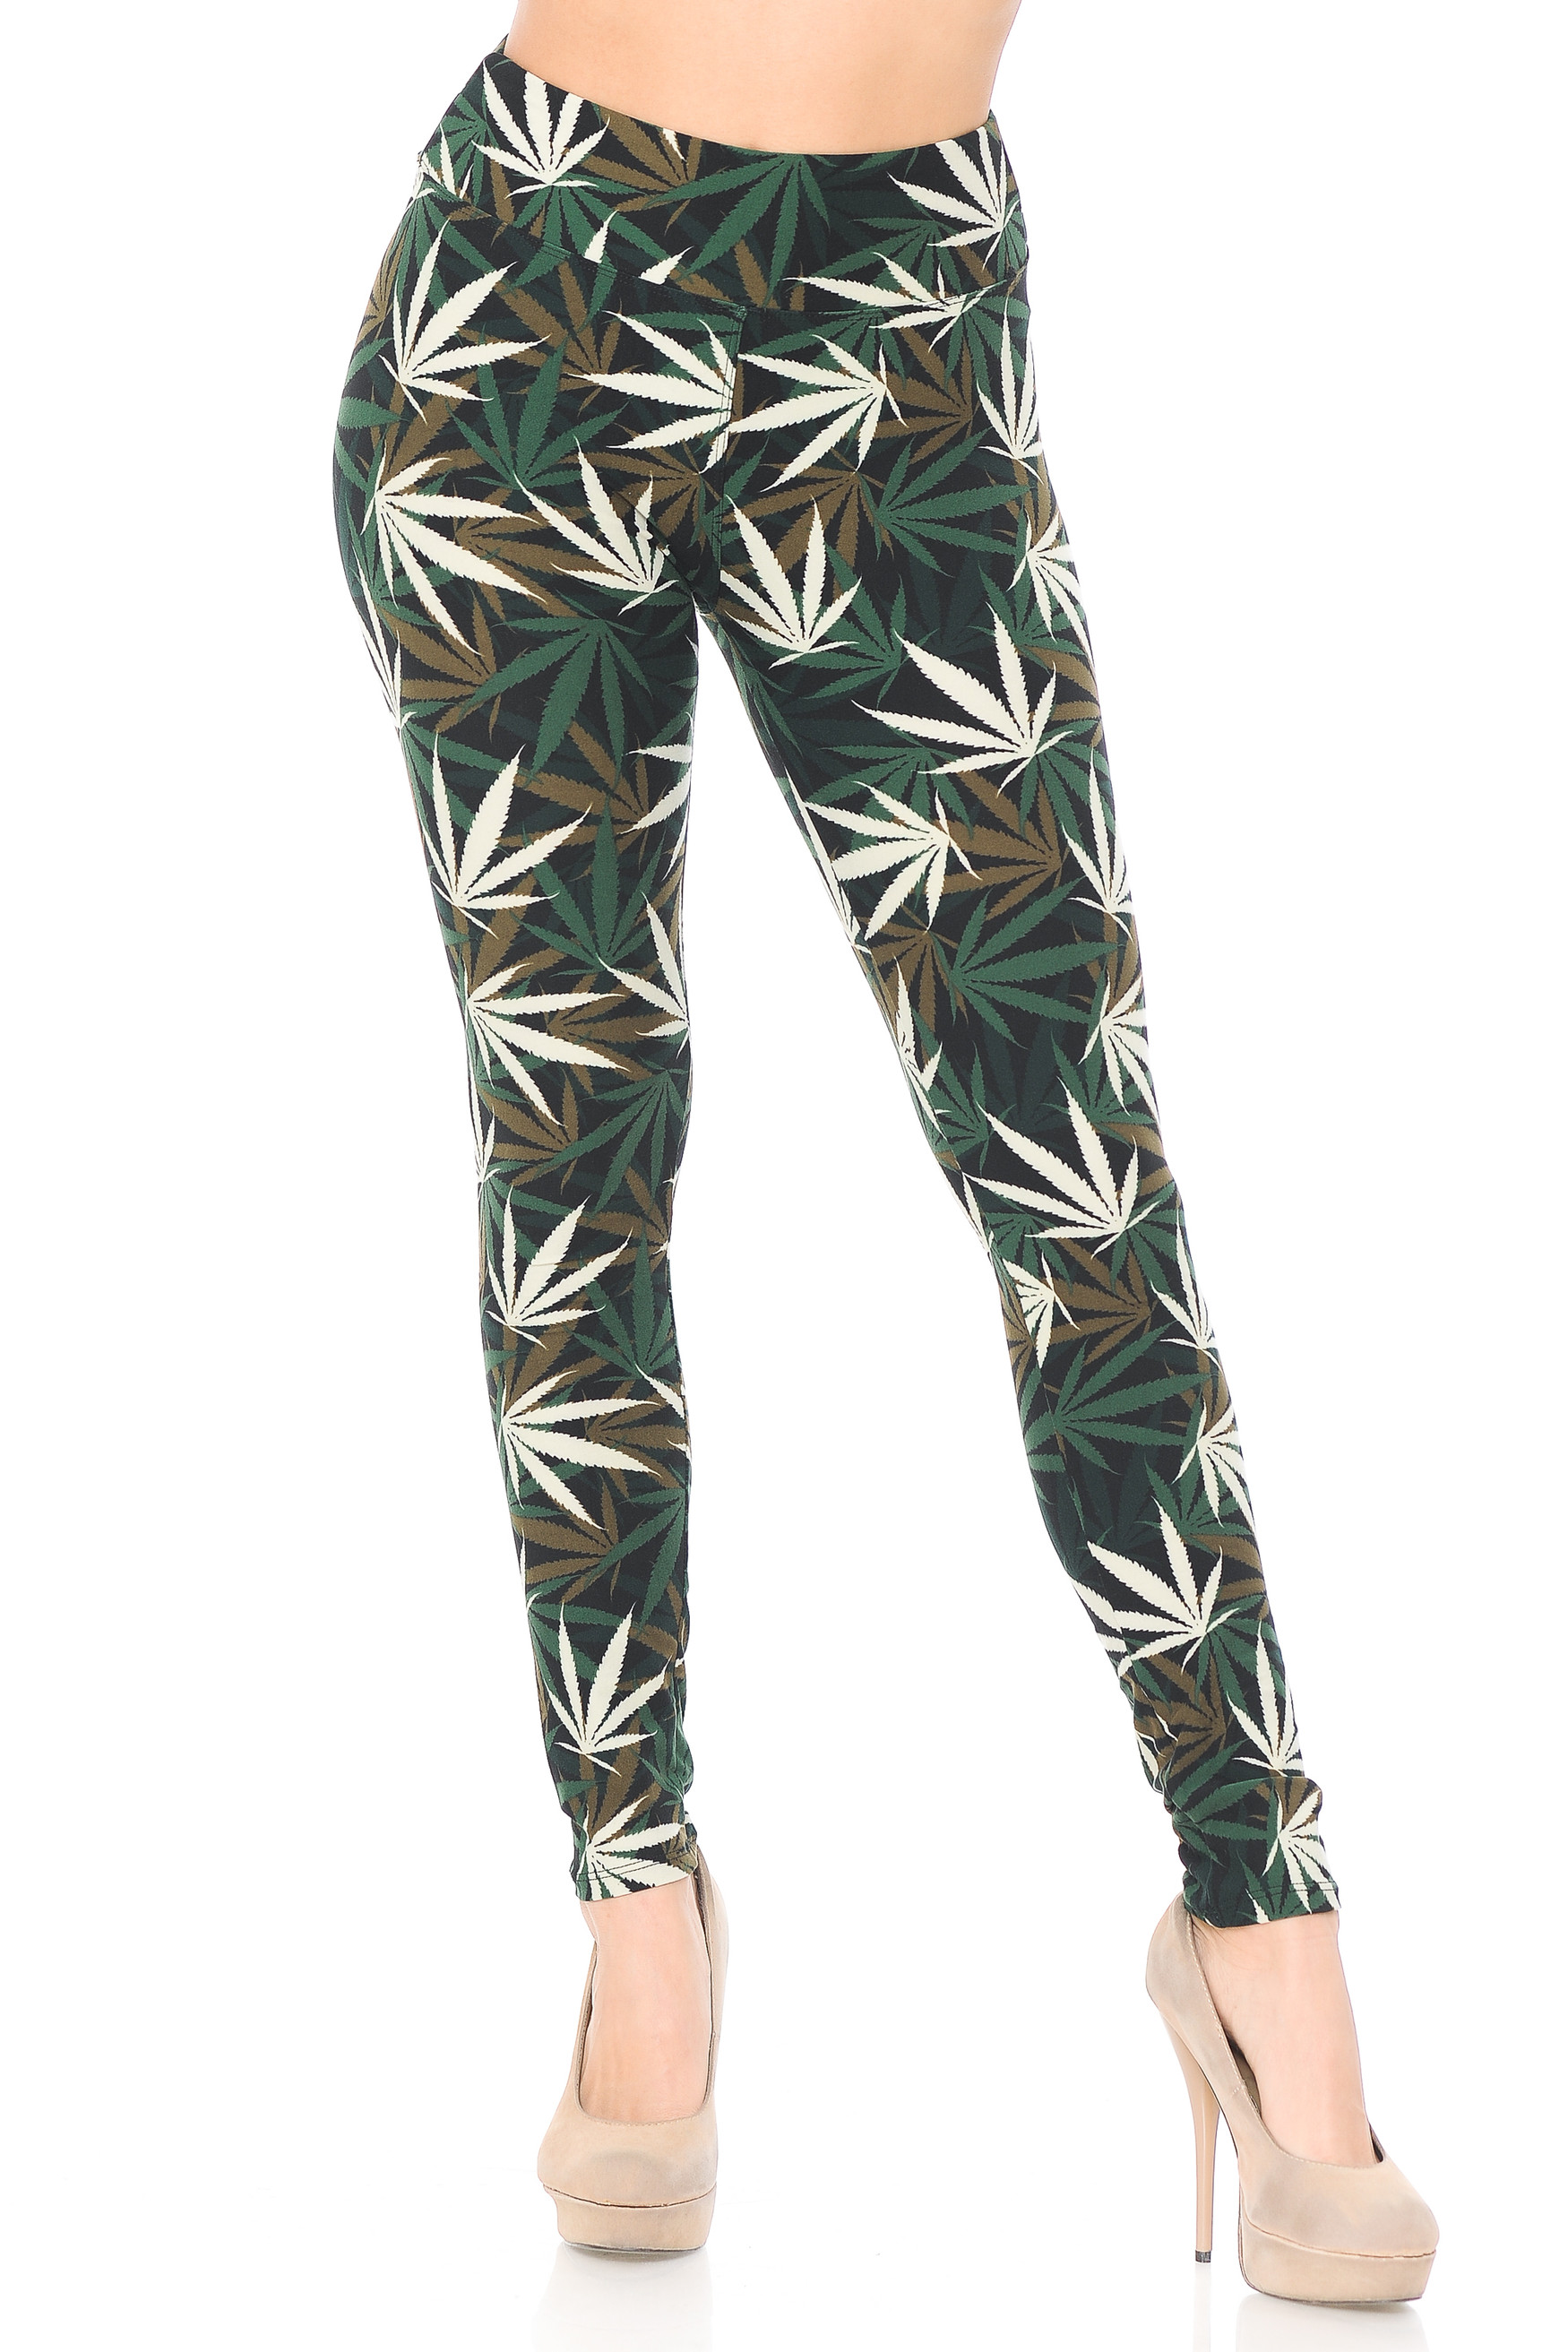 High Waisted Candyland Paisley Buttery Soft Leggings